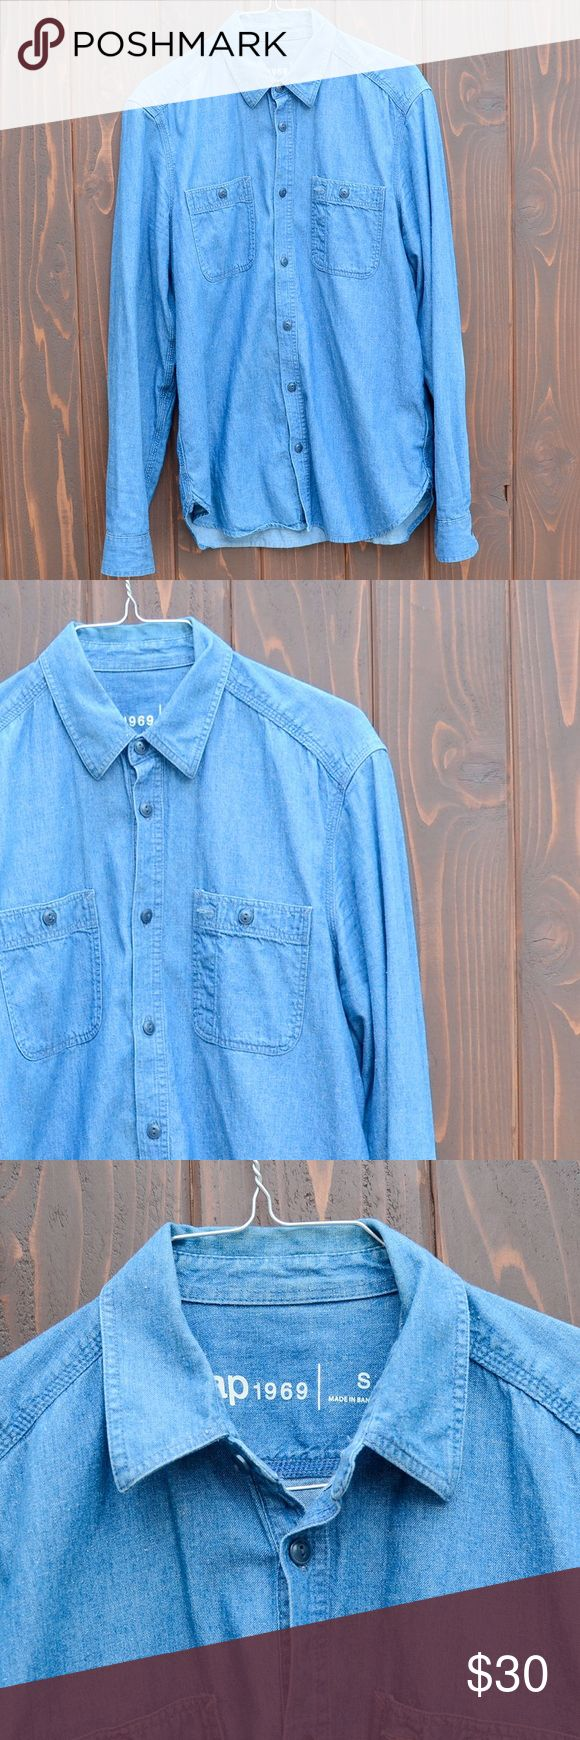 GAP Mens denim button down long sleeve shirt. GAP Mens denim button down long sleeve shirt. In good conditions with minor fading on the elbow area. Size Small in men's but may also fit a size medium. GAP Shirts Casual Button Down Shirts